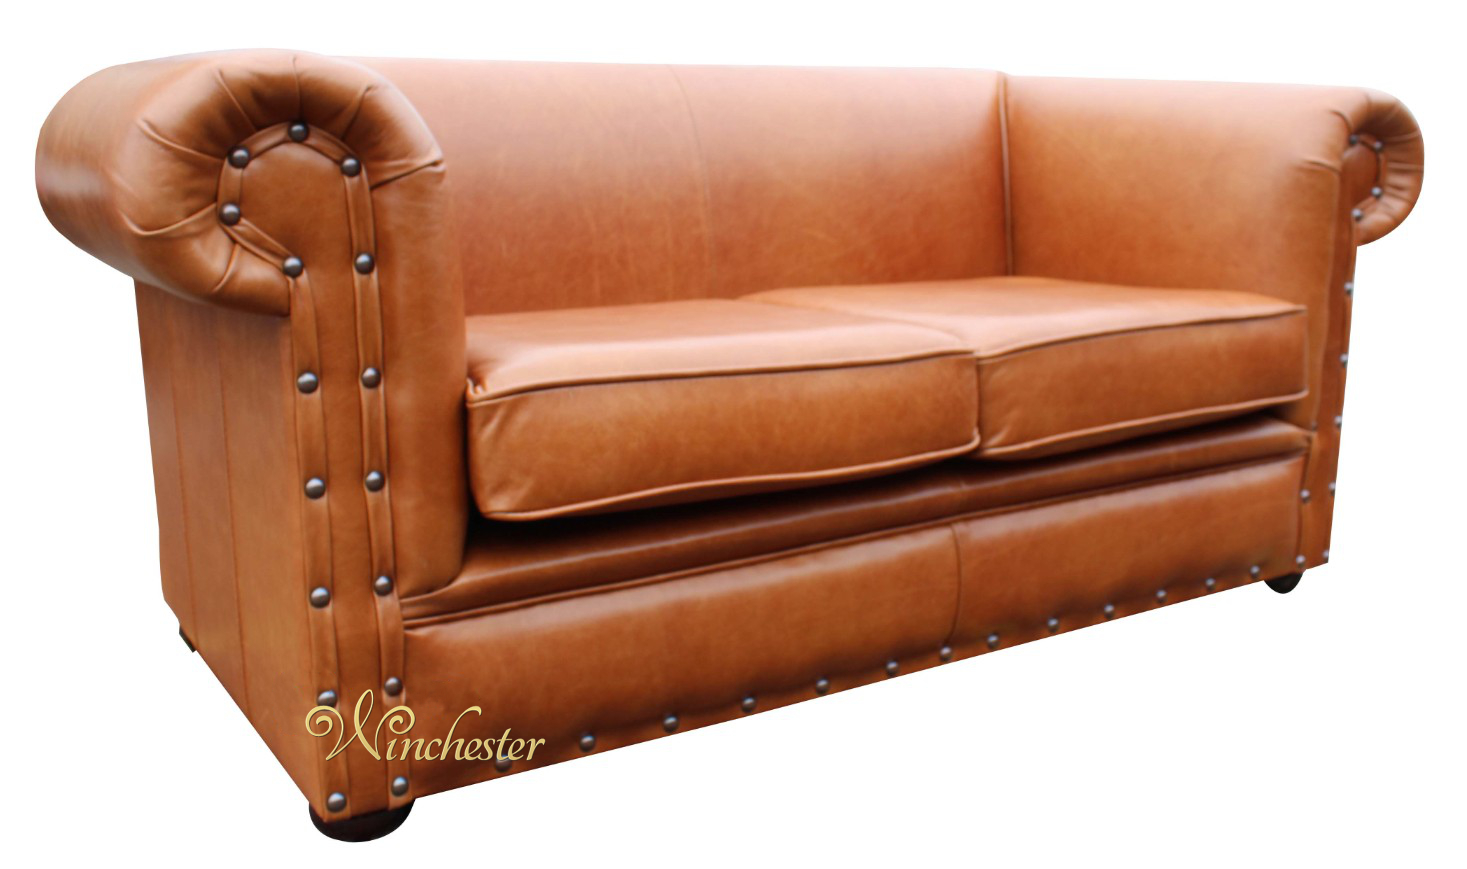 Chesterfield decor 2 seater settee old english saddle for Decorating with 2 loveseats